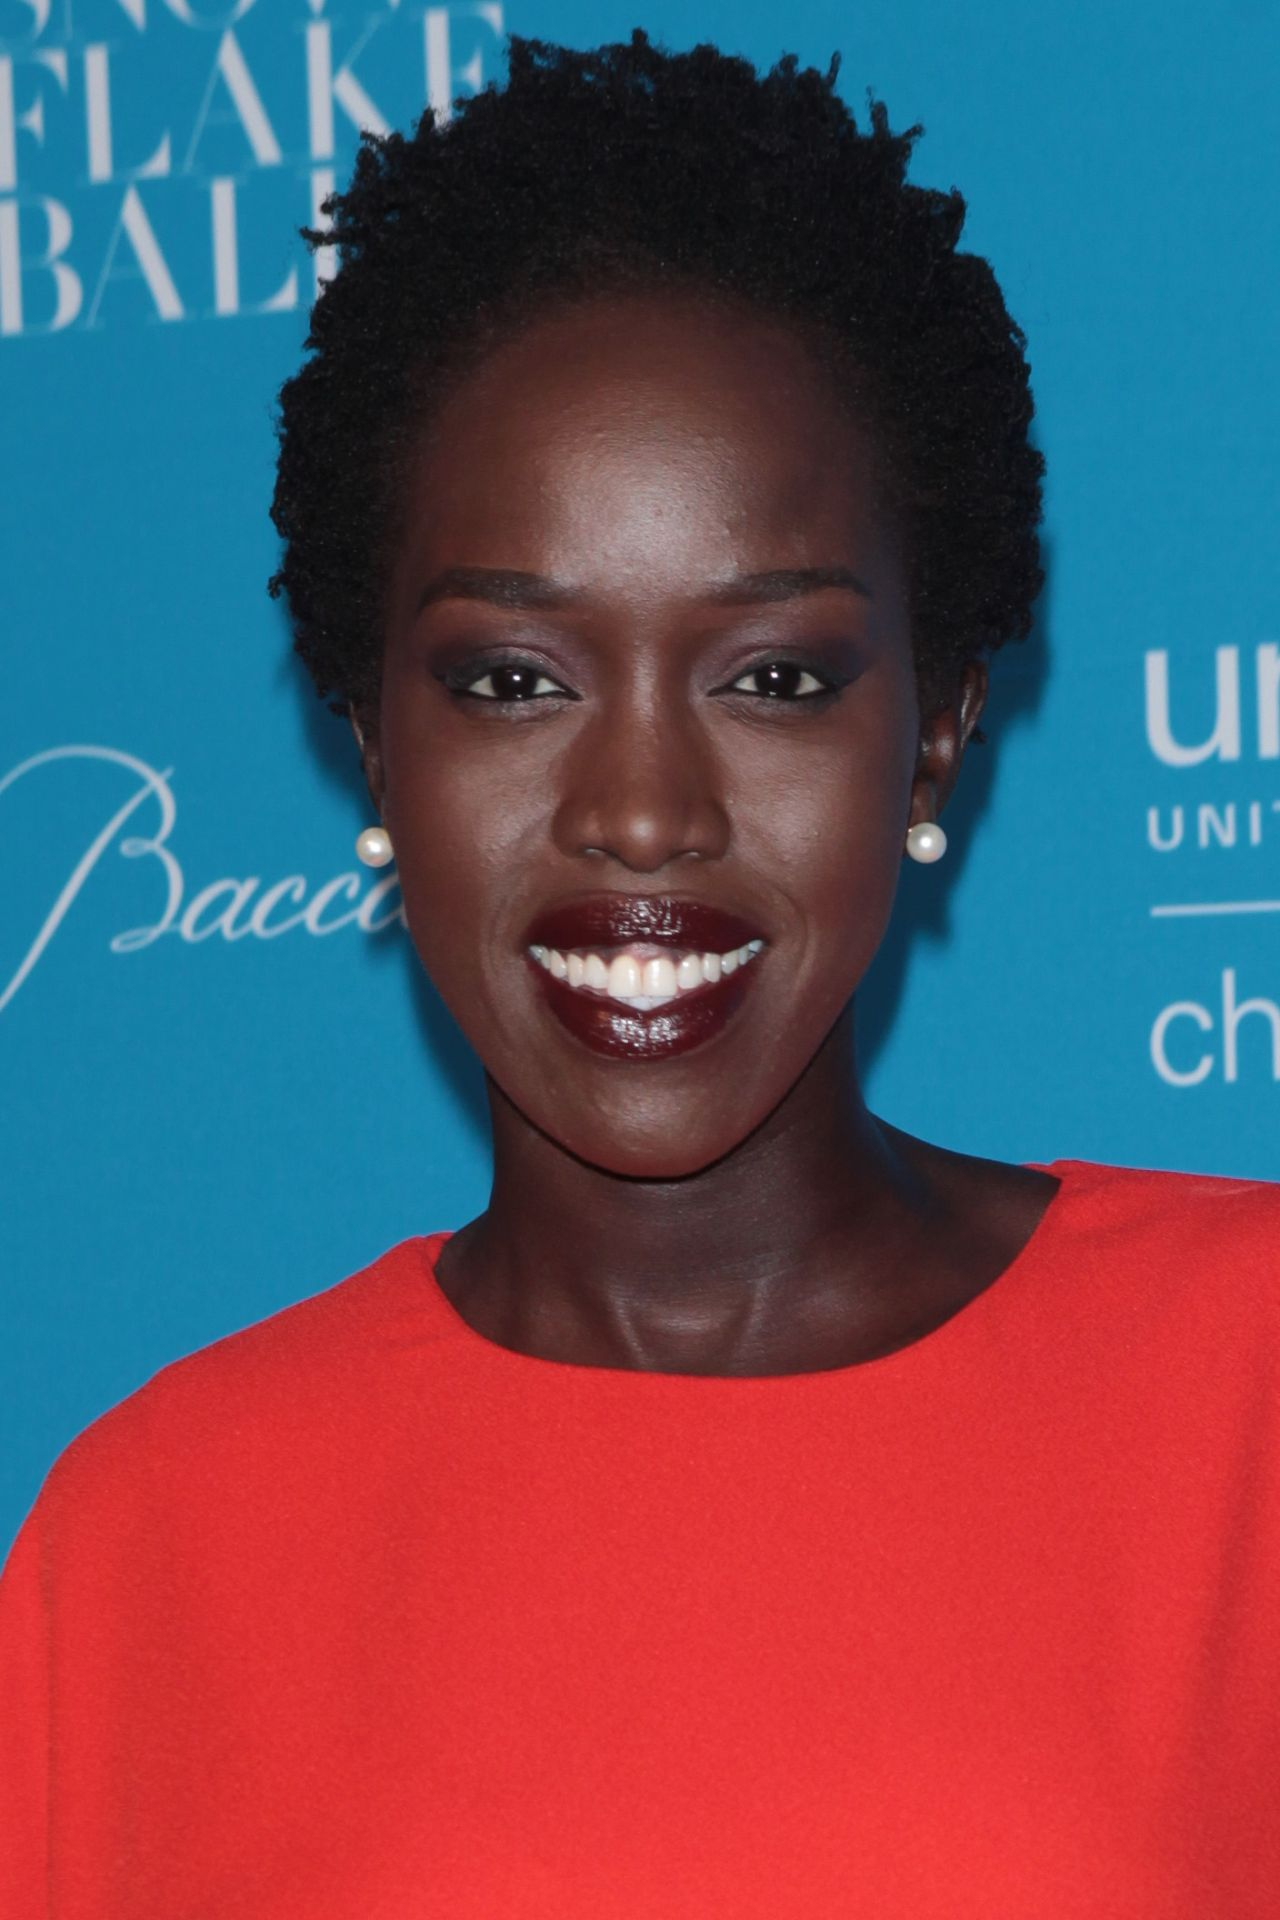 kuoth wiel instagram